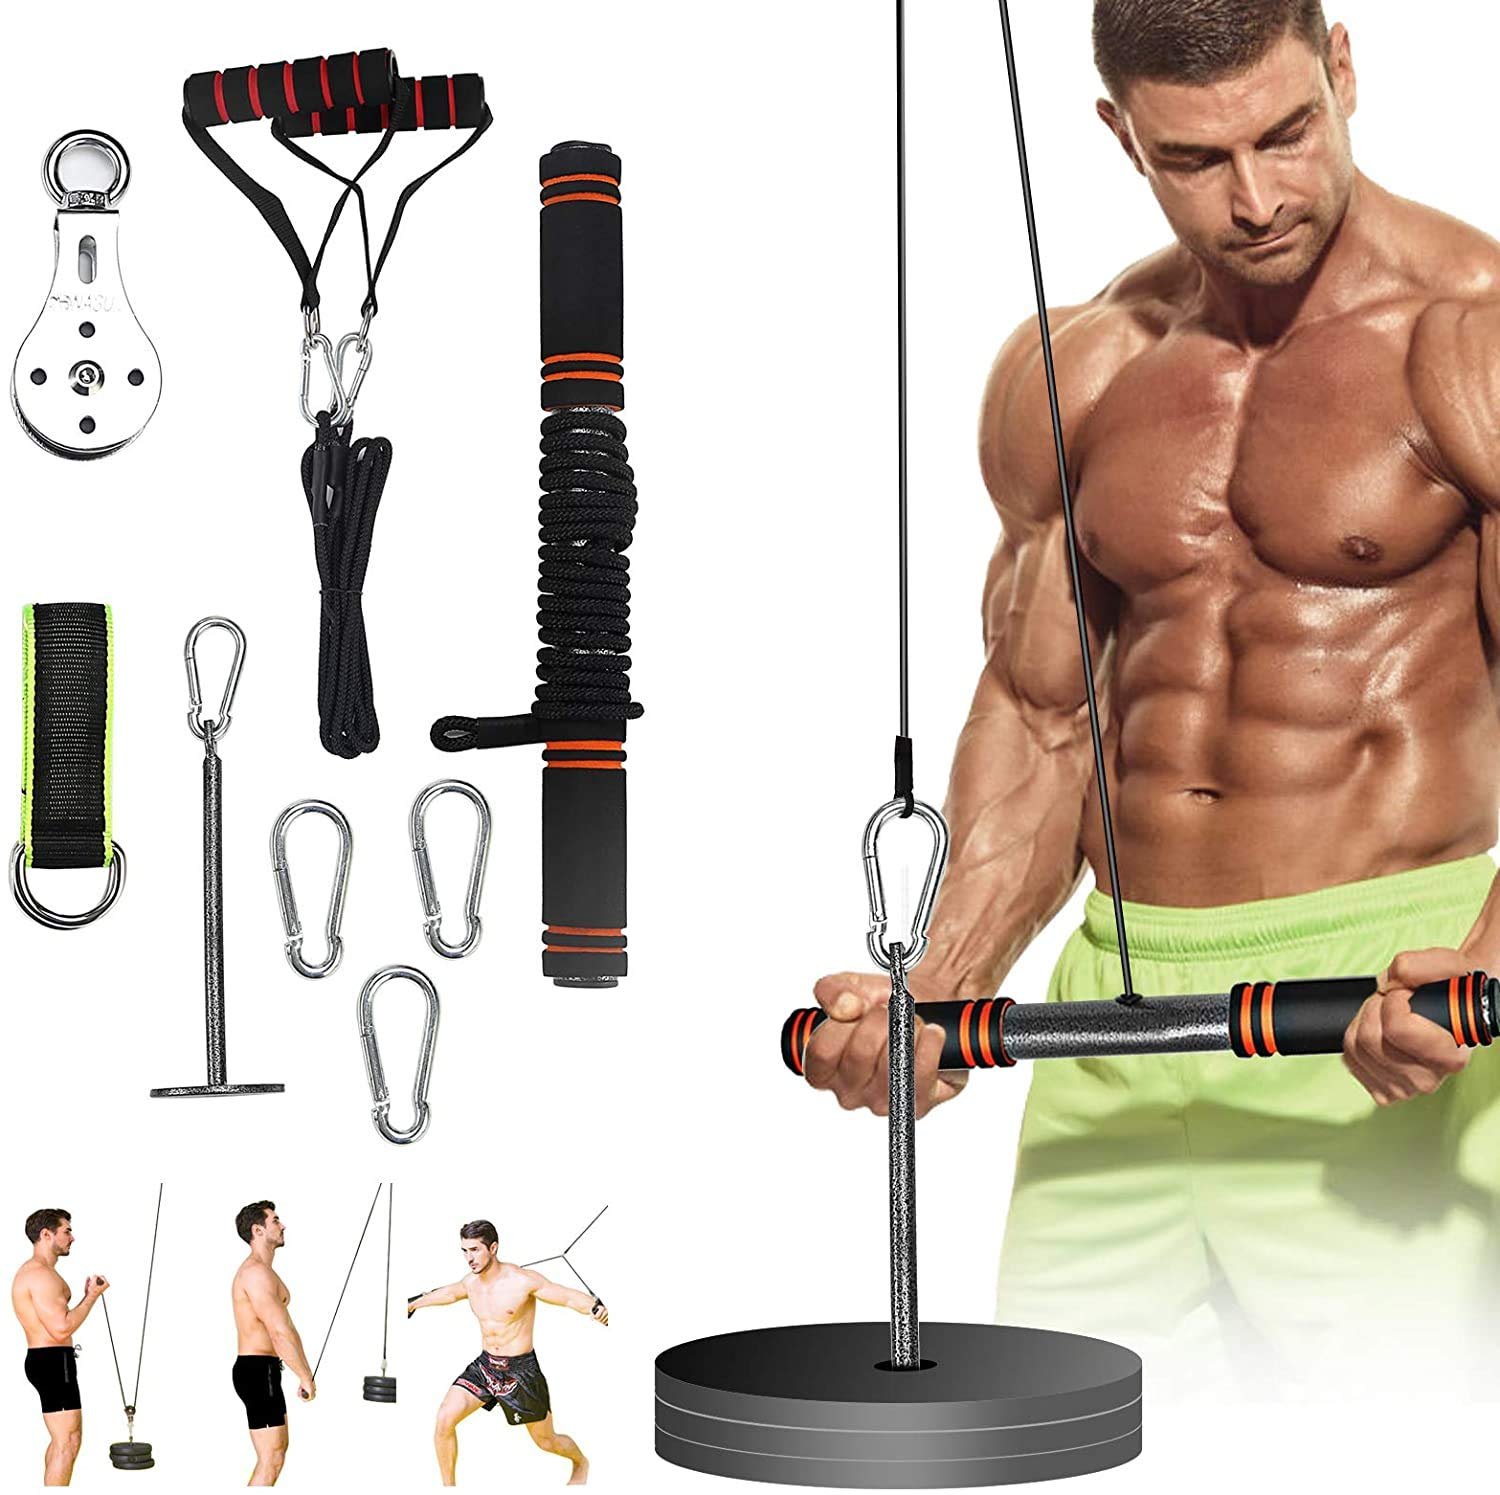 Forearm Wrist Roller Trainer Arm Strength Training Exerciser with Heavy Duty Pulley System for Lat Pull downs, Bicep curls, Triceps Extensions Fitness Workout